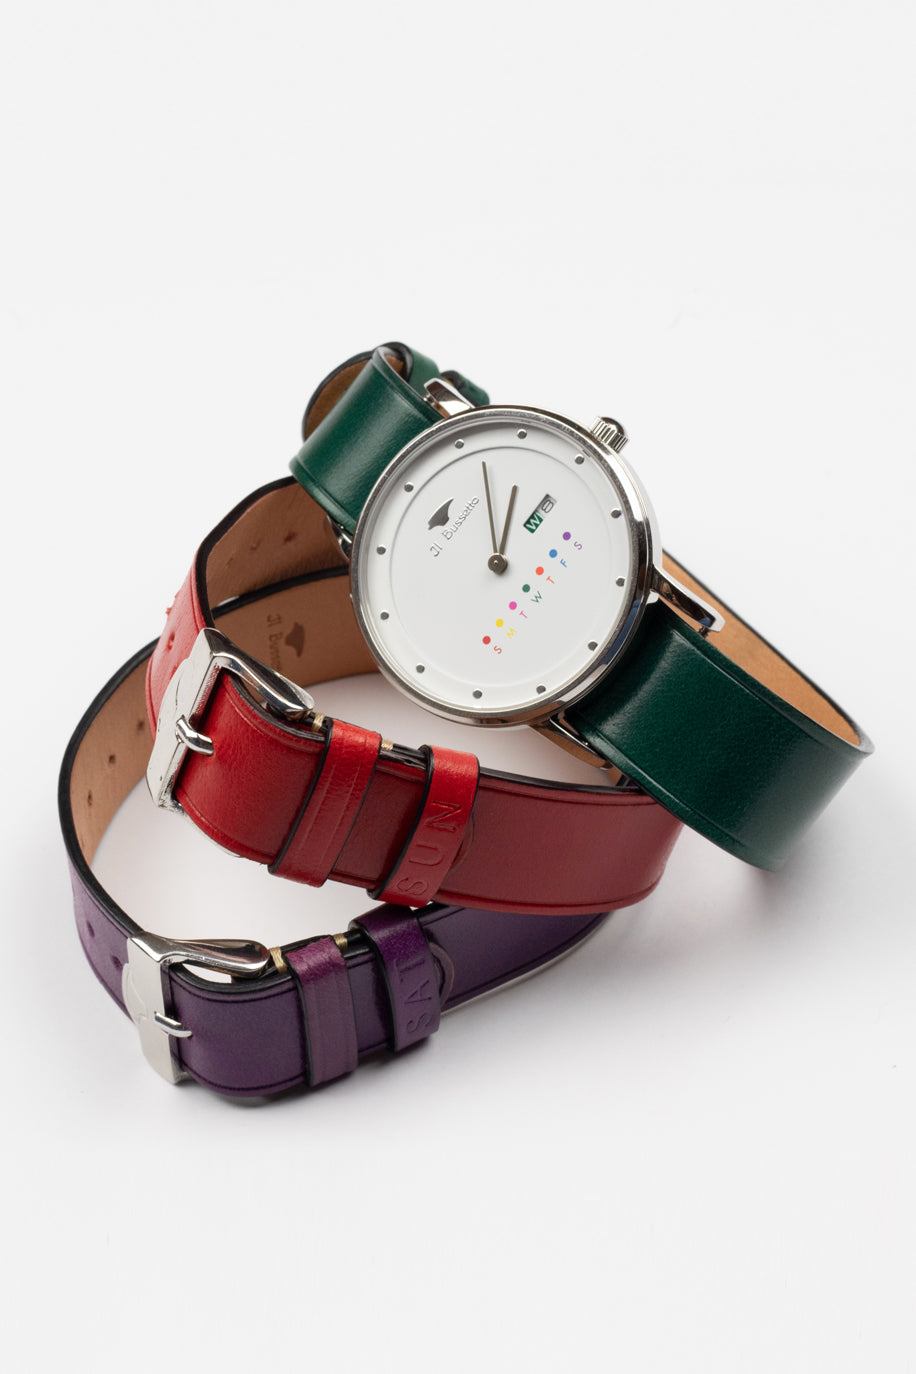 Watch + 3 Leather Watchstraps